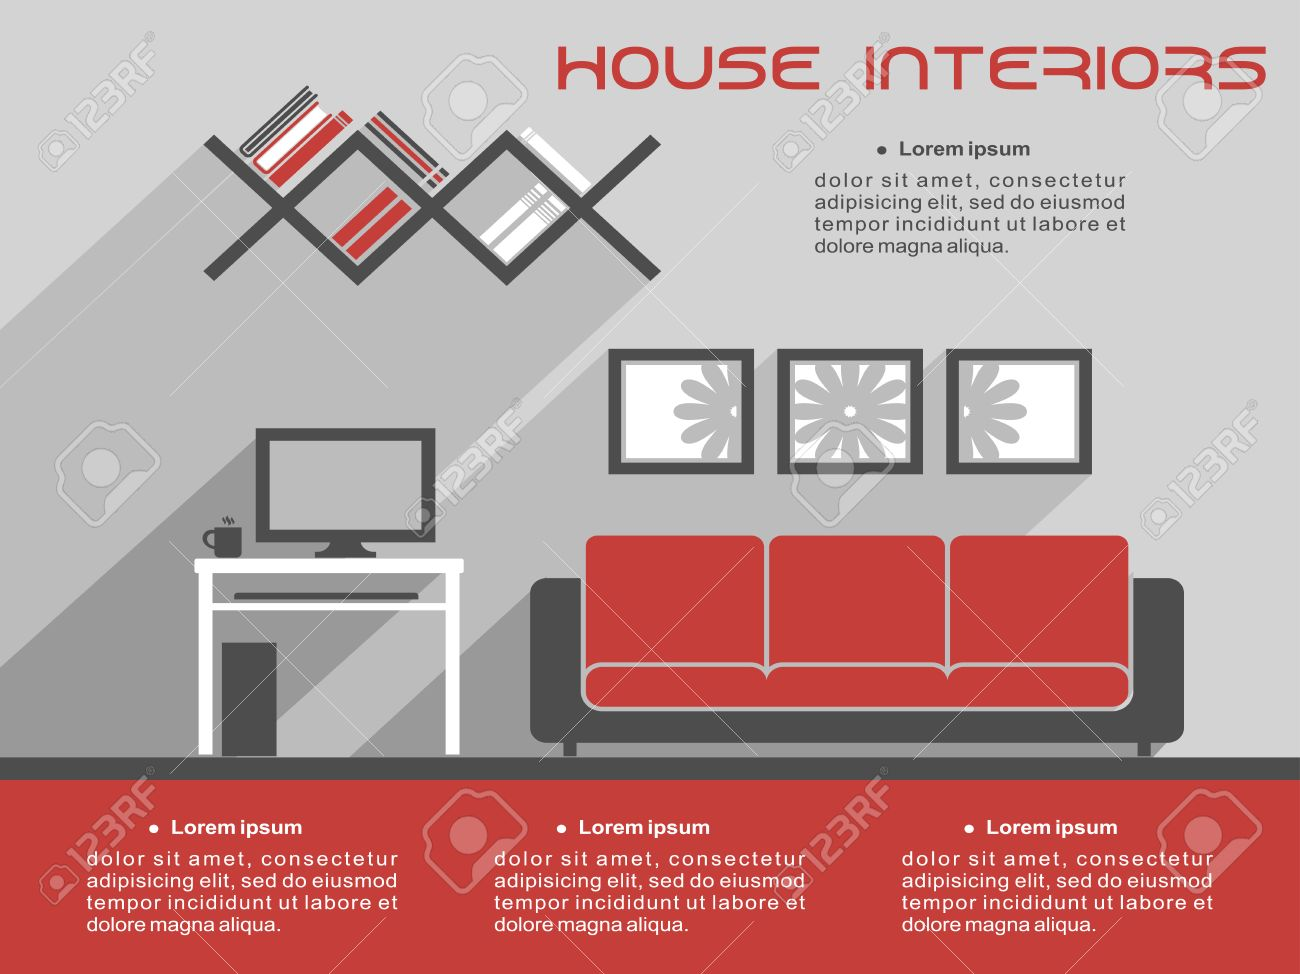 house interior design infographic template showing a living room